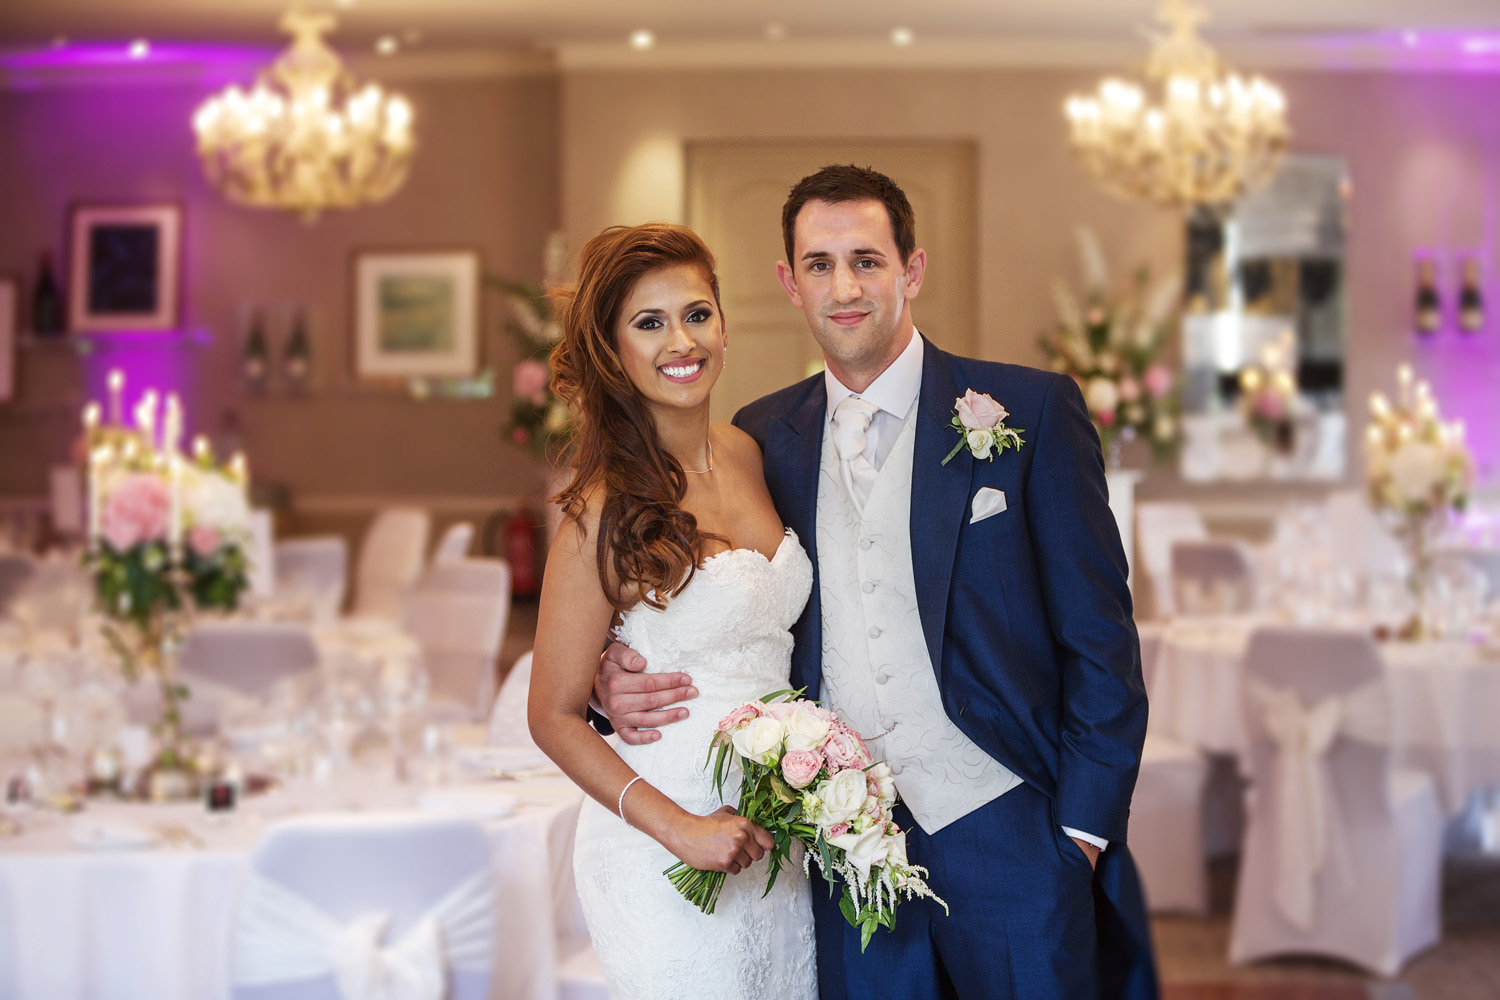 The_Vineyard_Hotel_Wedding_Photographer_Newbury_Berkshire_005.jpg